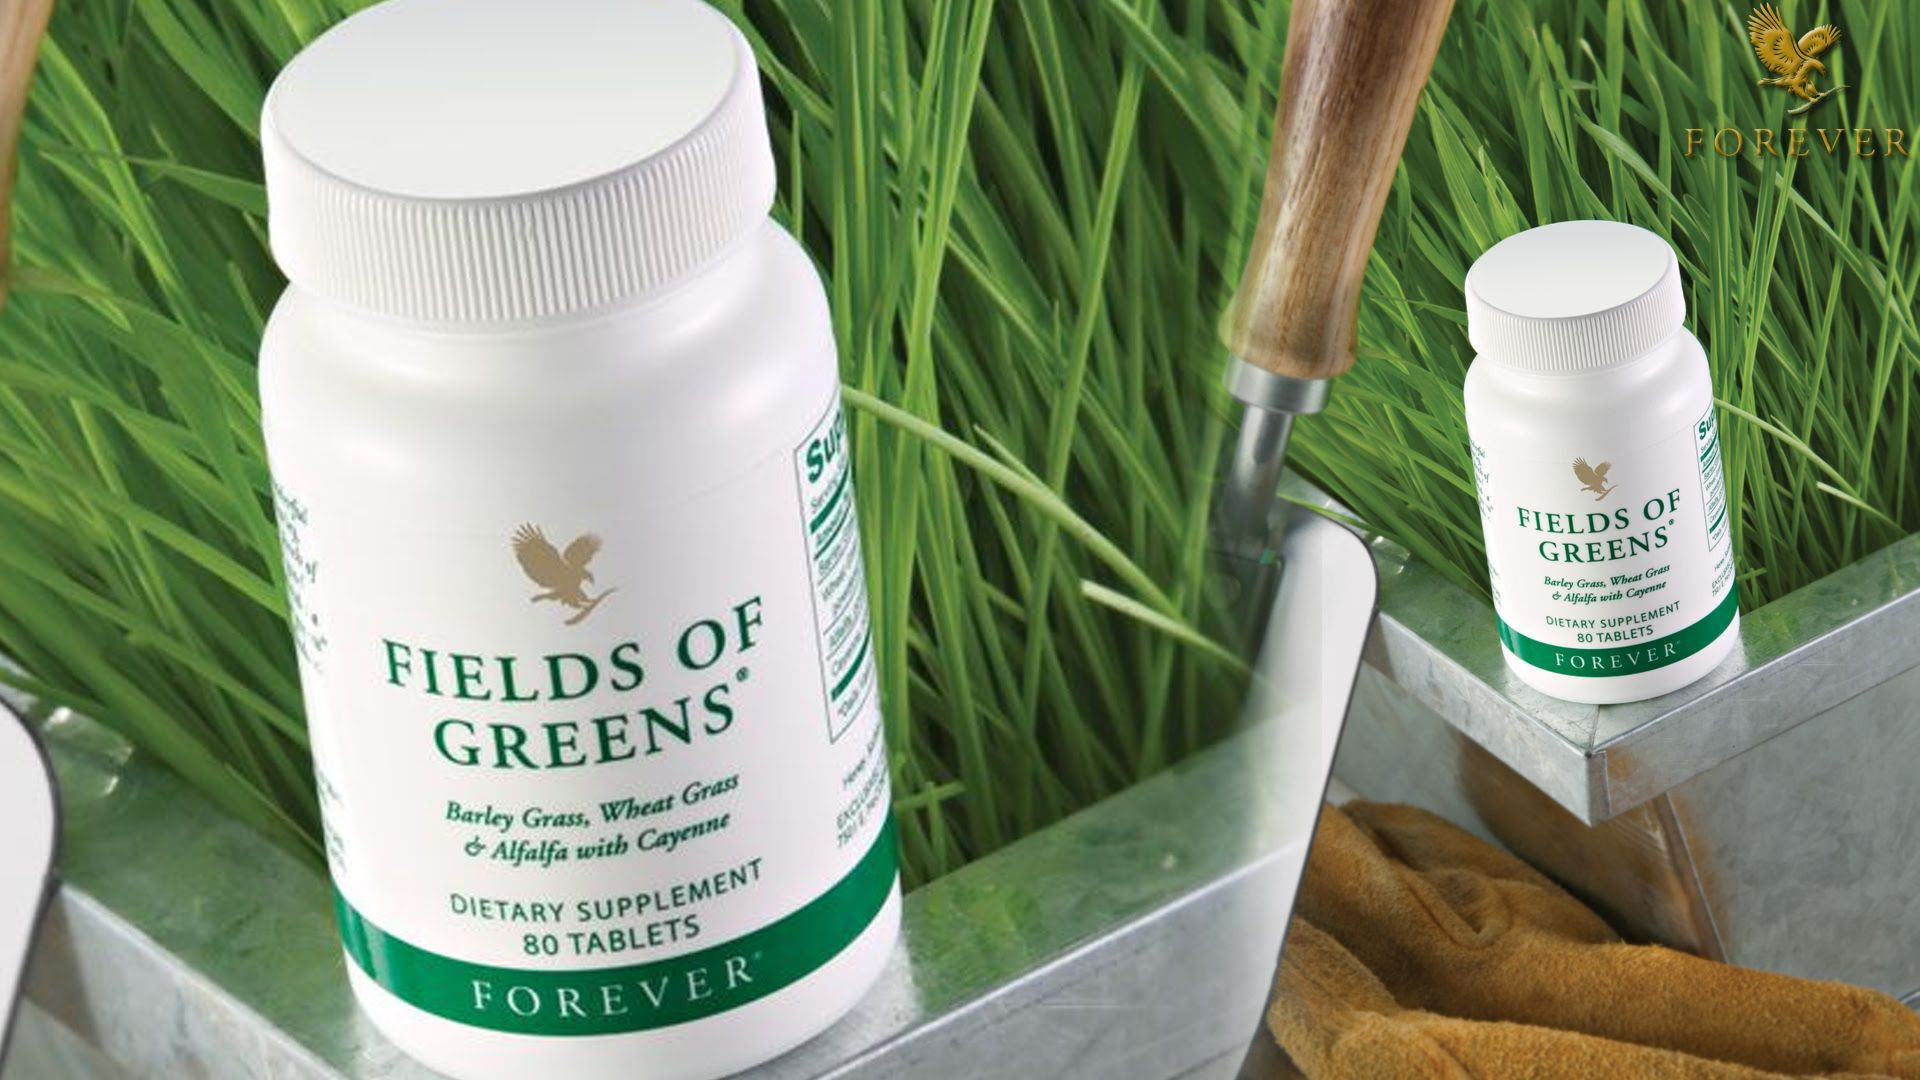 Forever fields of green 80 no s Vitamins Tablets